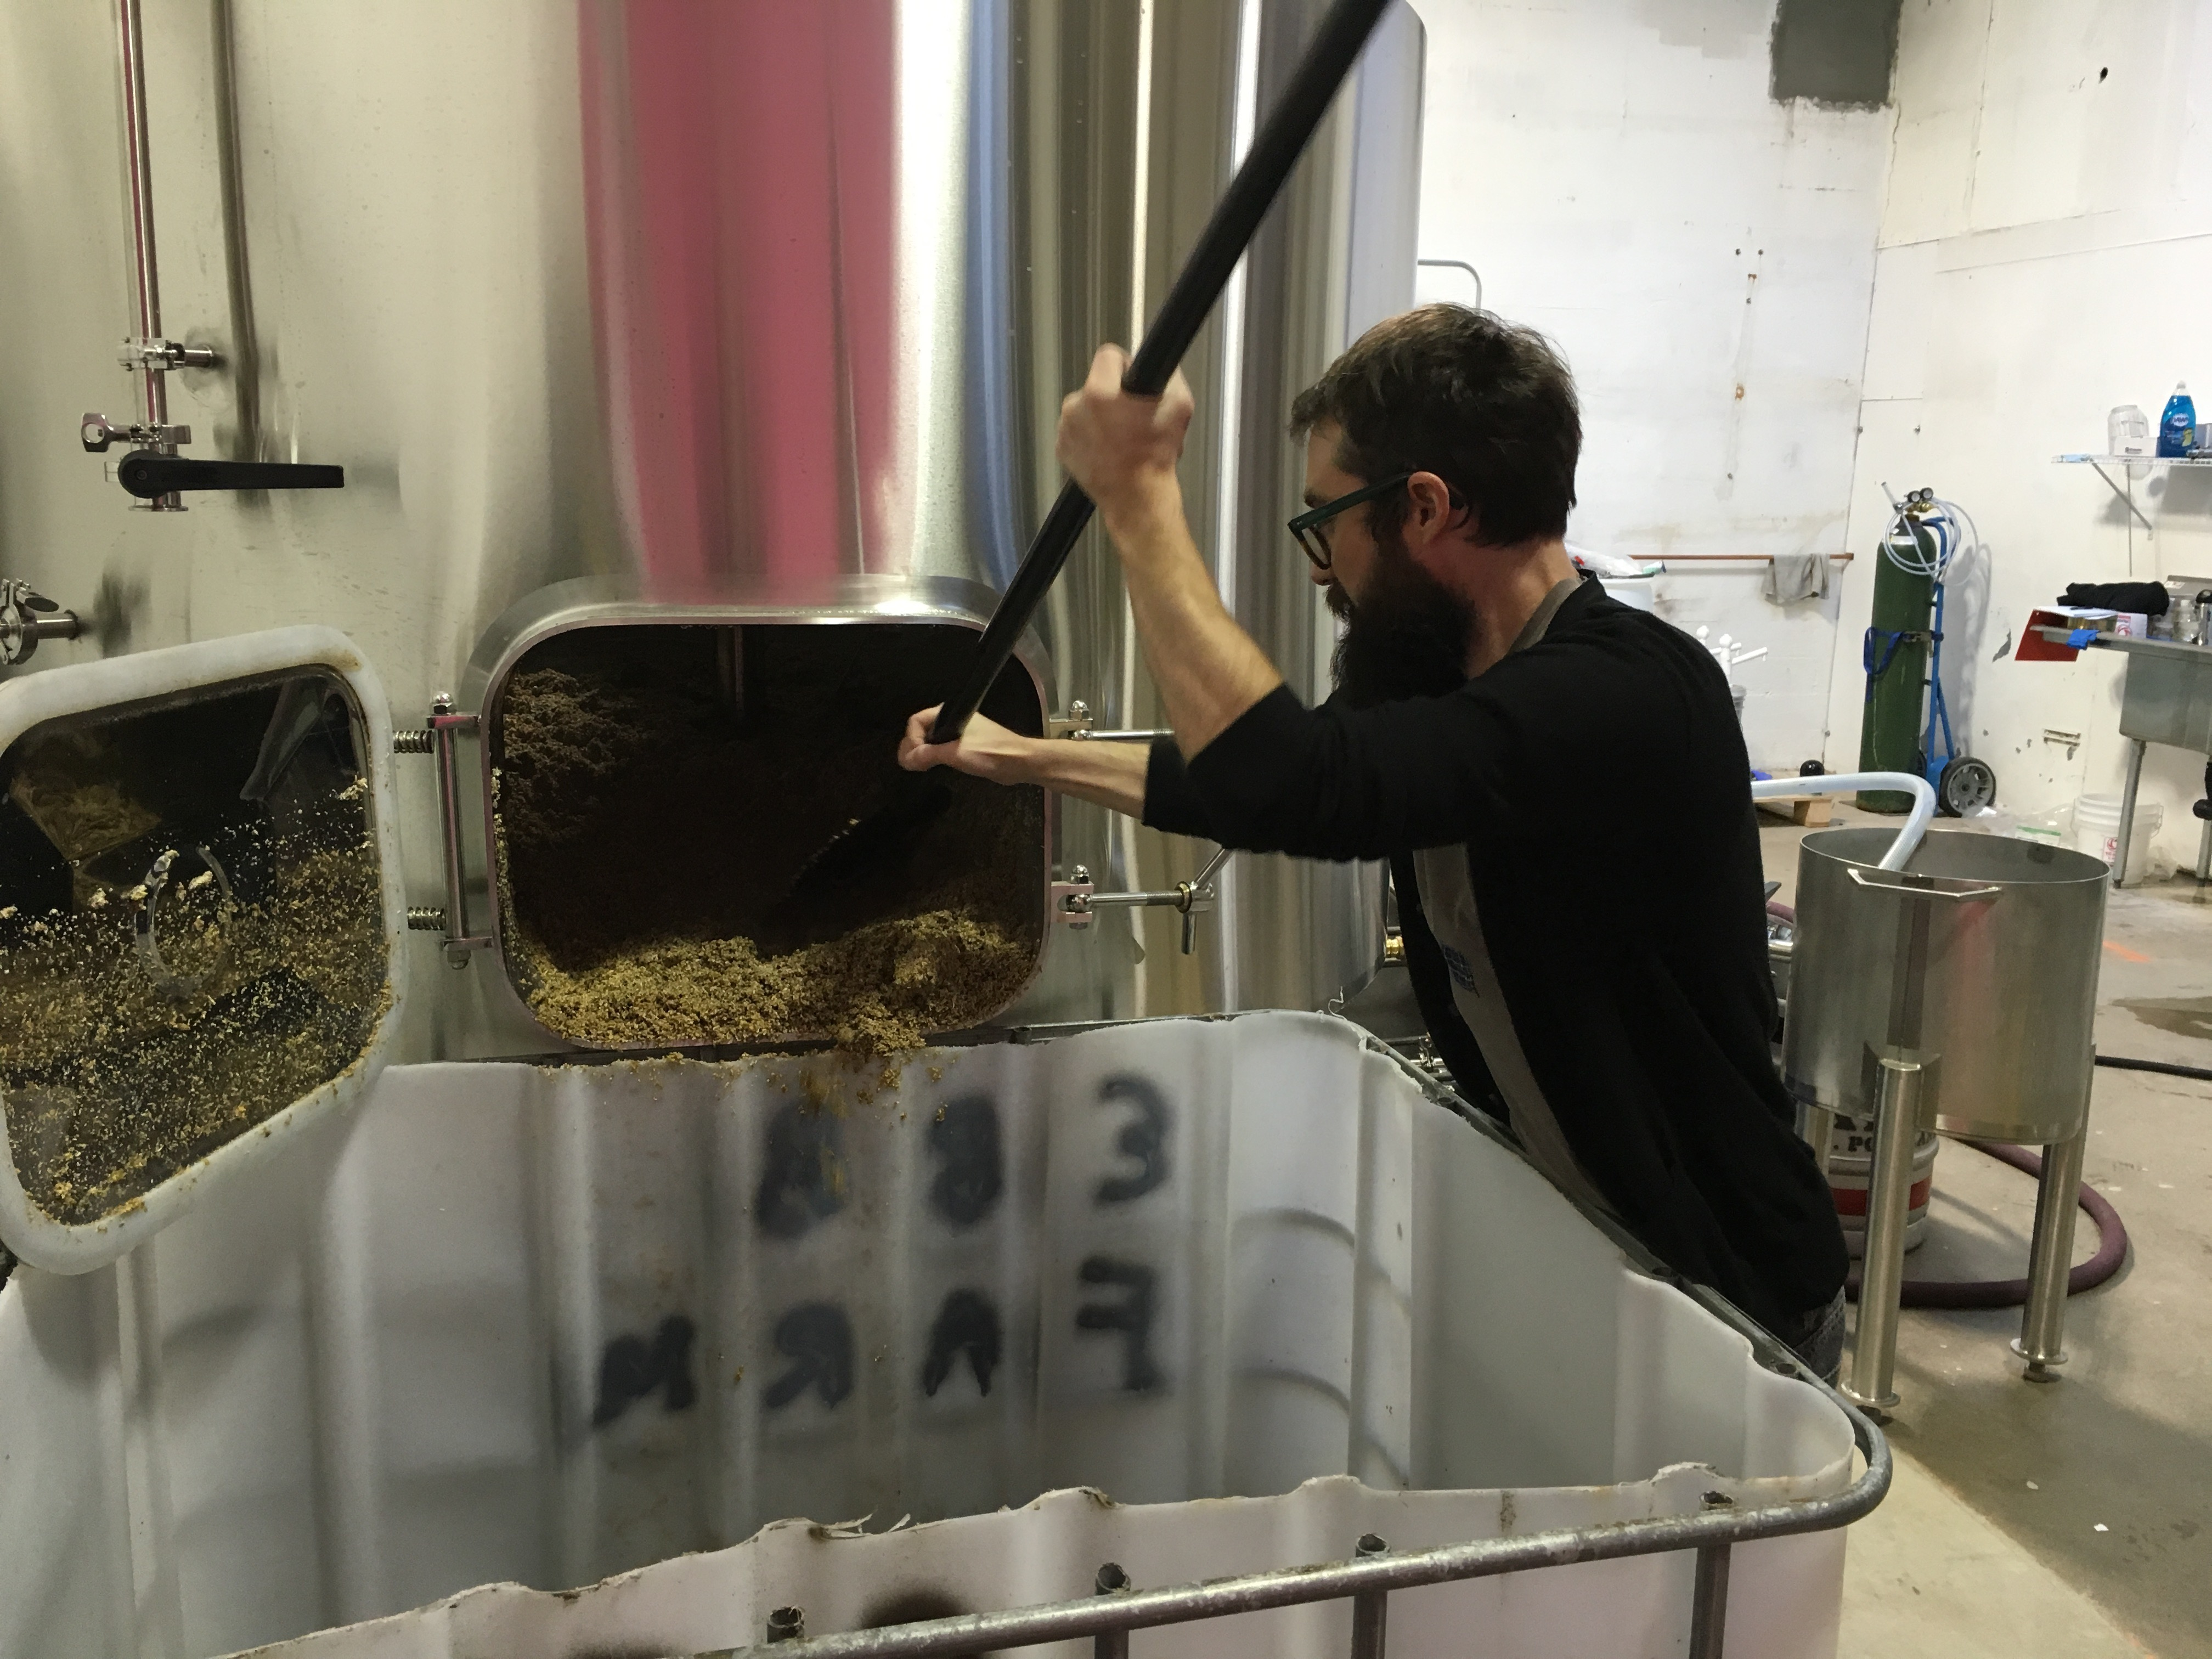 Roayle Brewing head brewer Paul Rey taking care of the spent grain after his first brew on St. Patrick's Day.